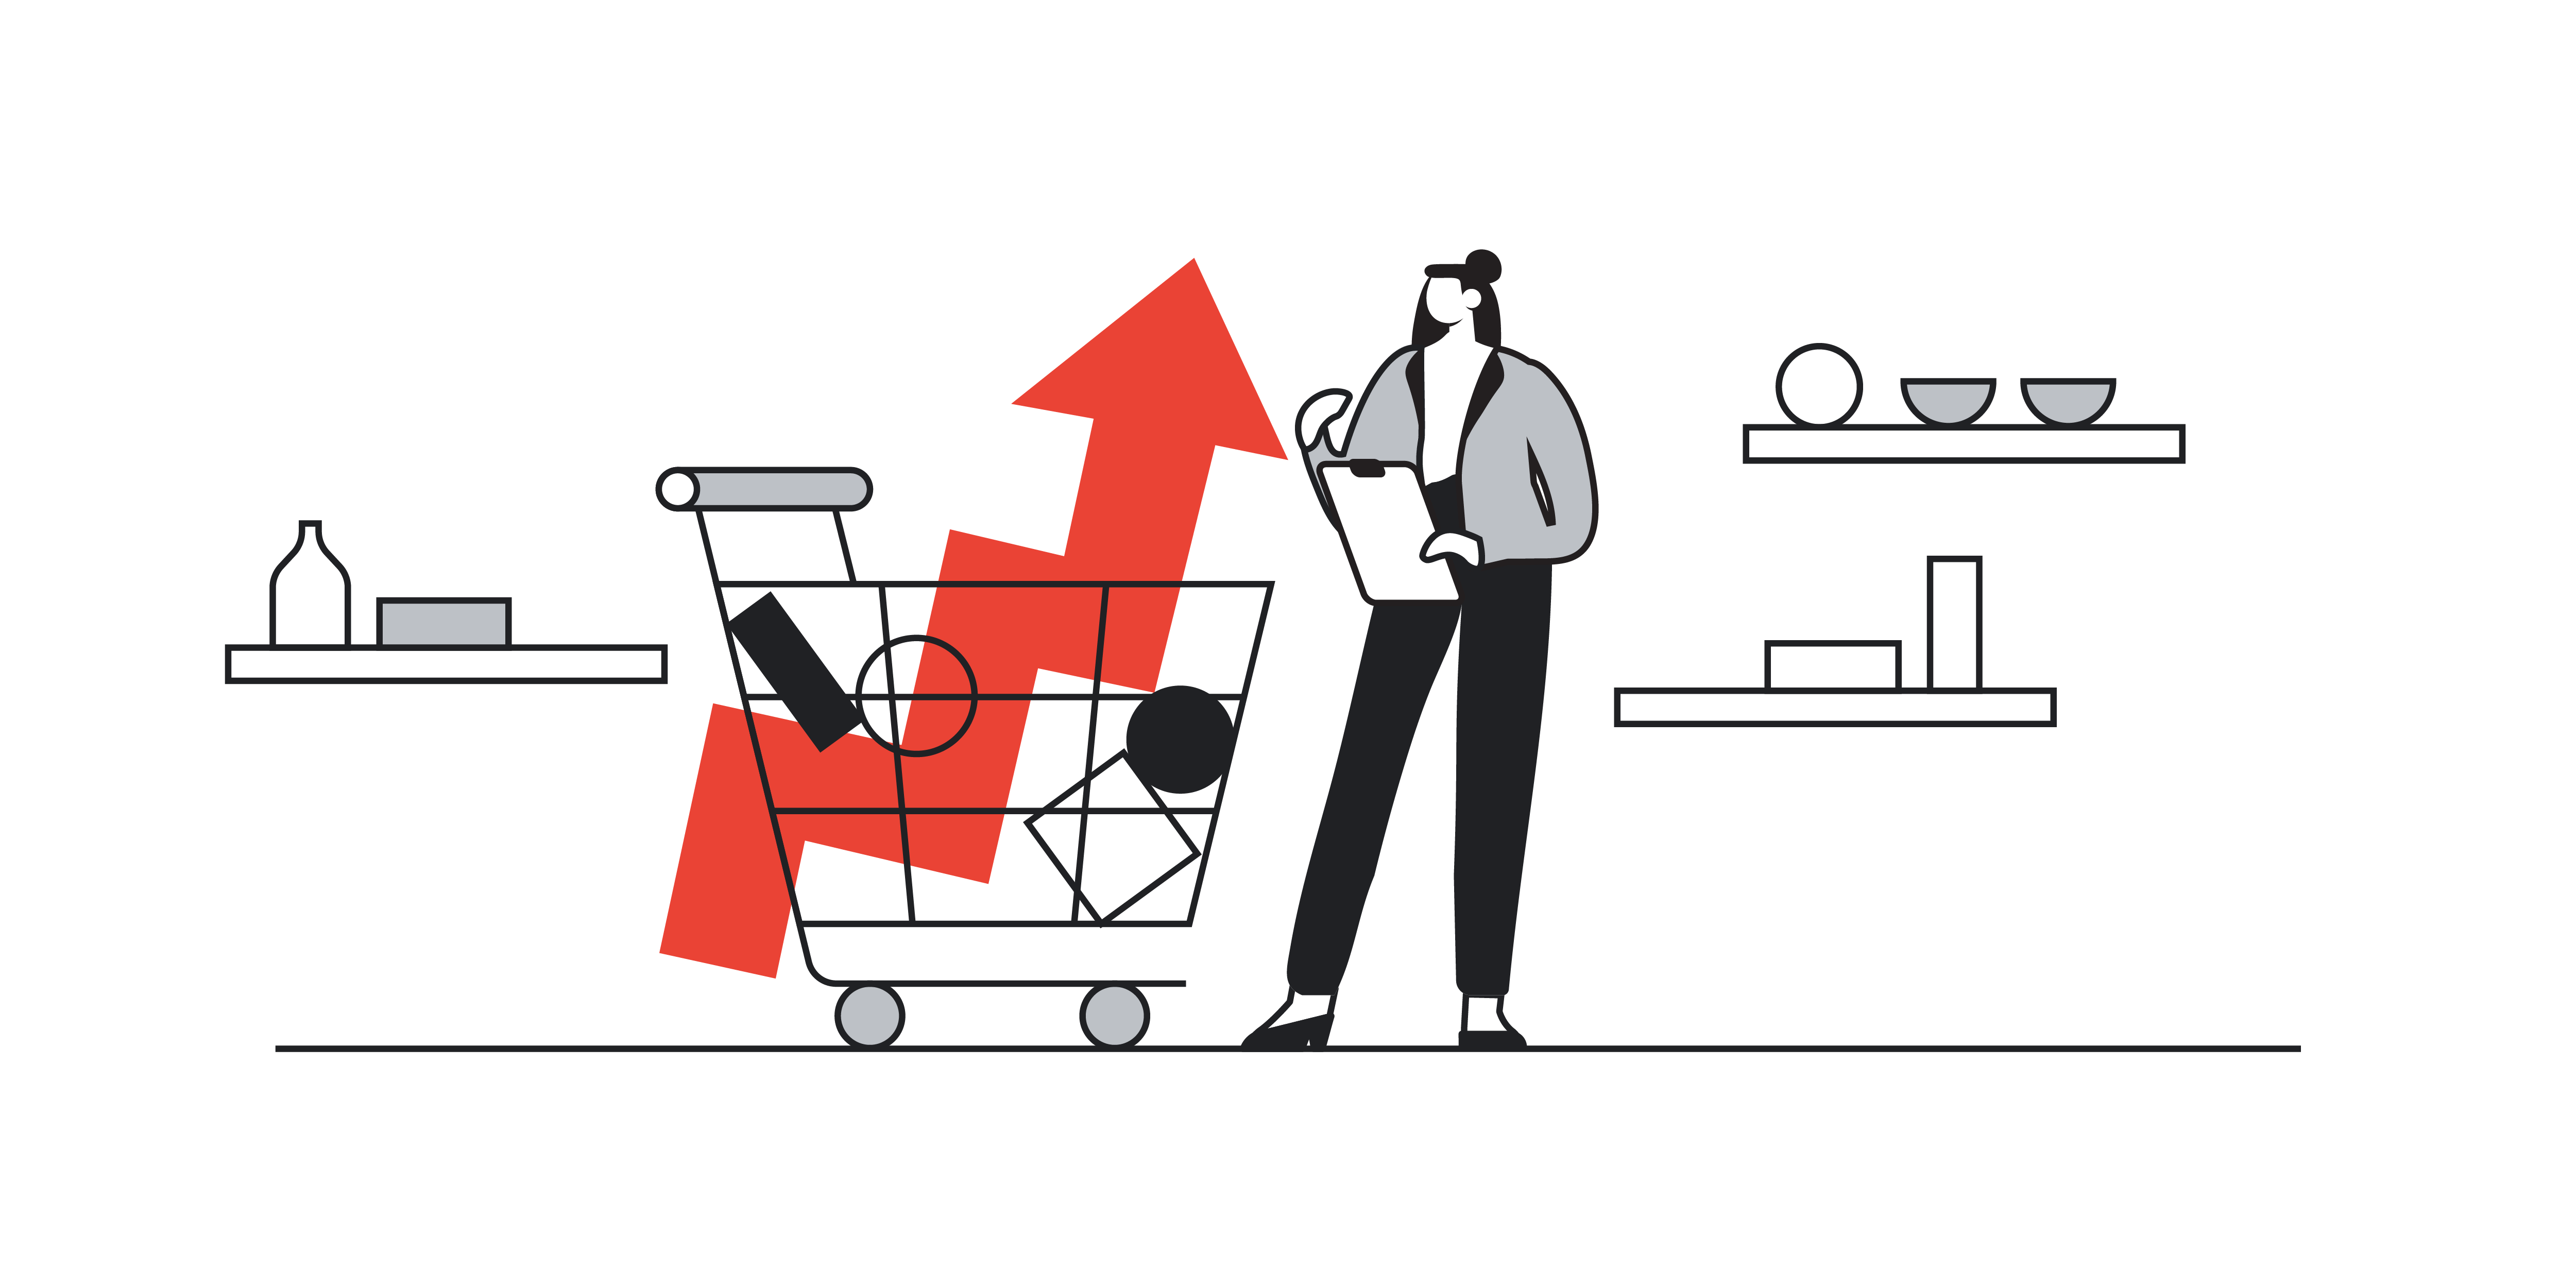 Google_TWG_Article_Retail & shopping.png